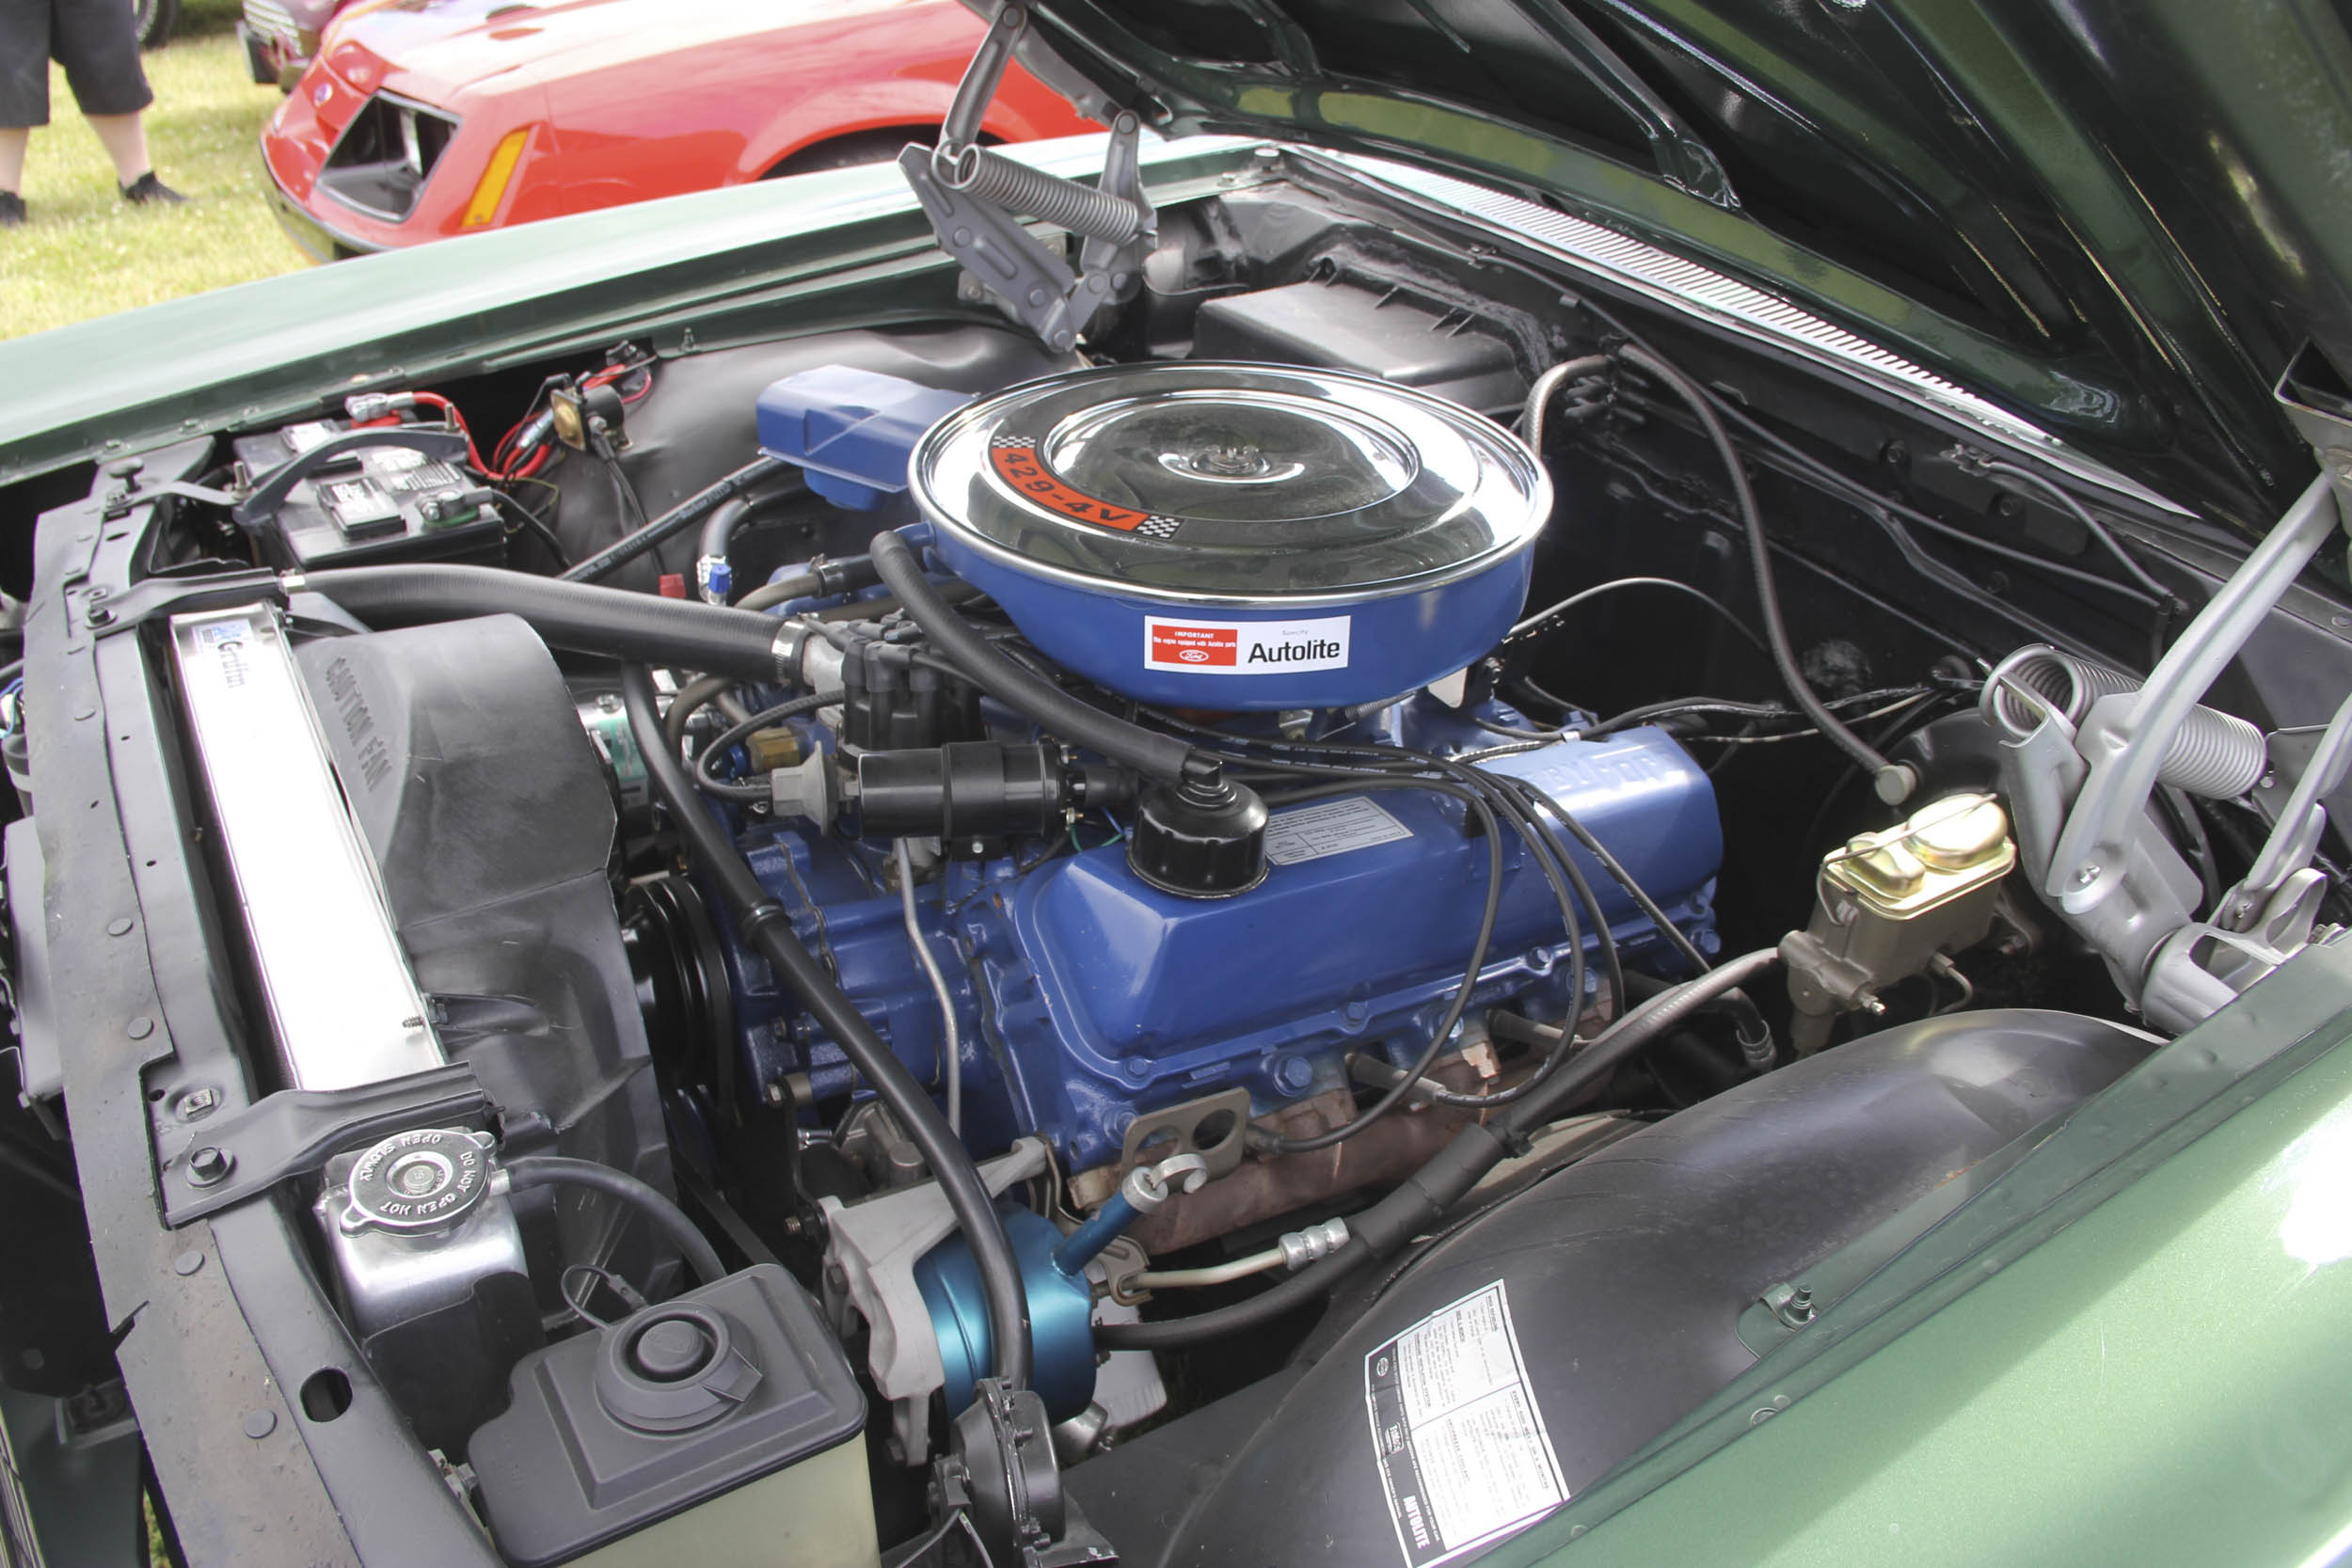 429-cu-in engines fit nicely in the 1969 full-size Ford engine compartment